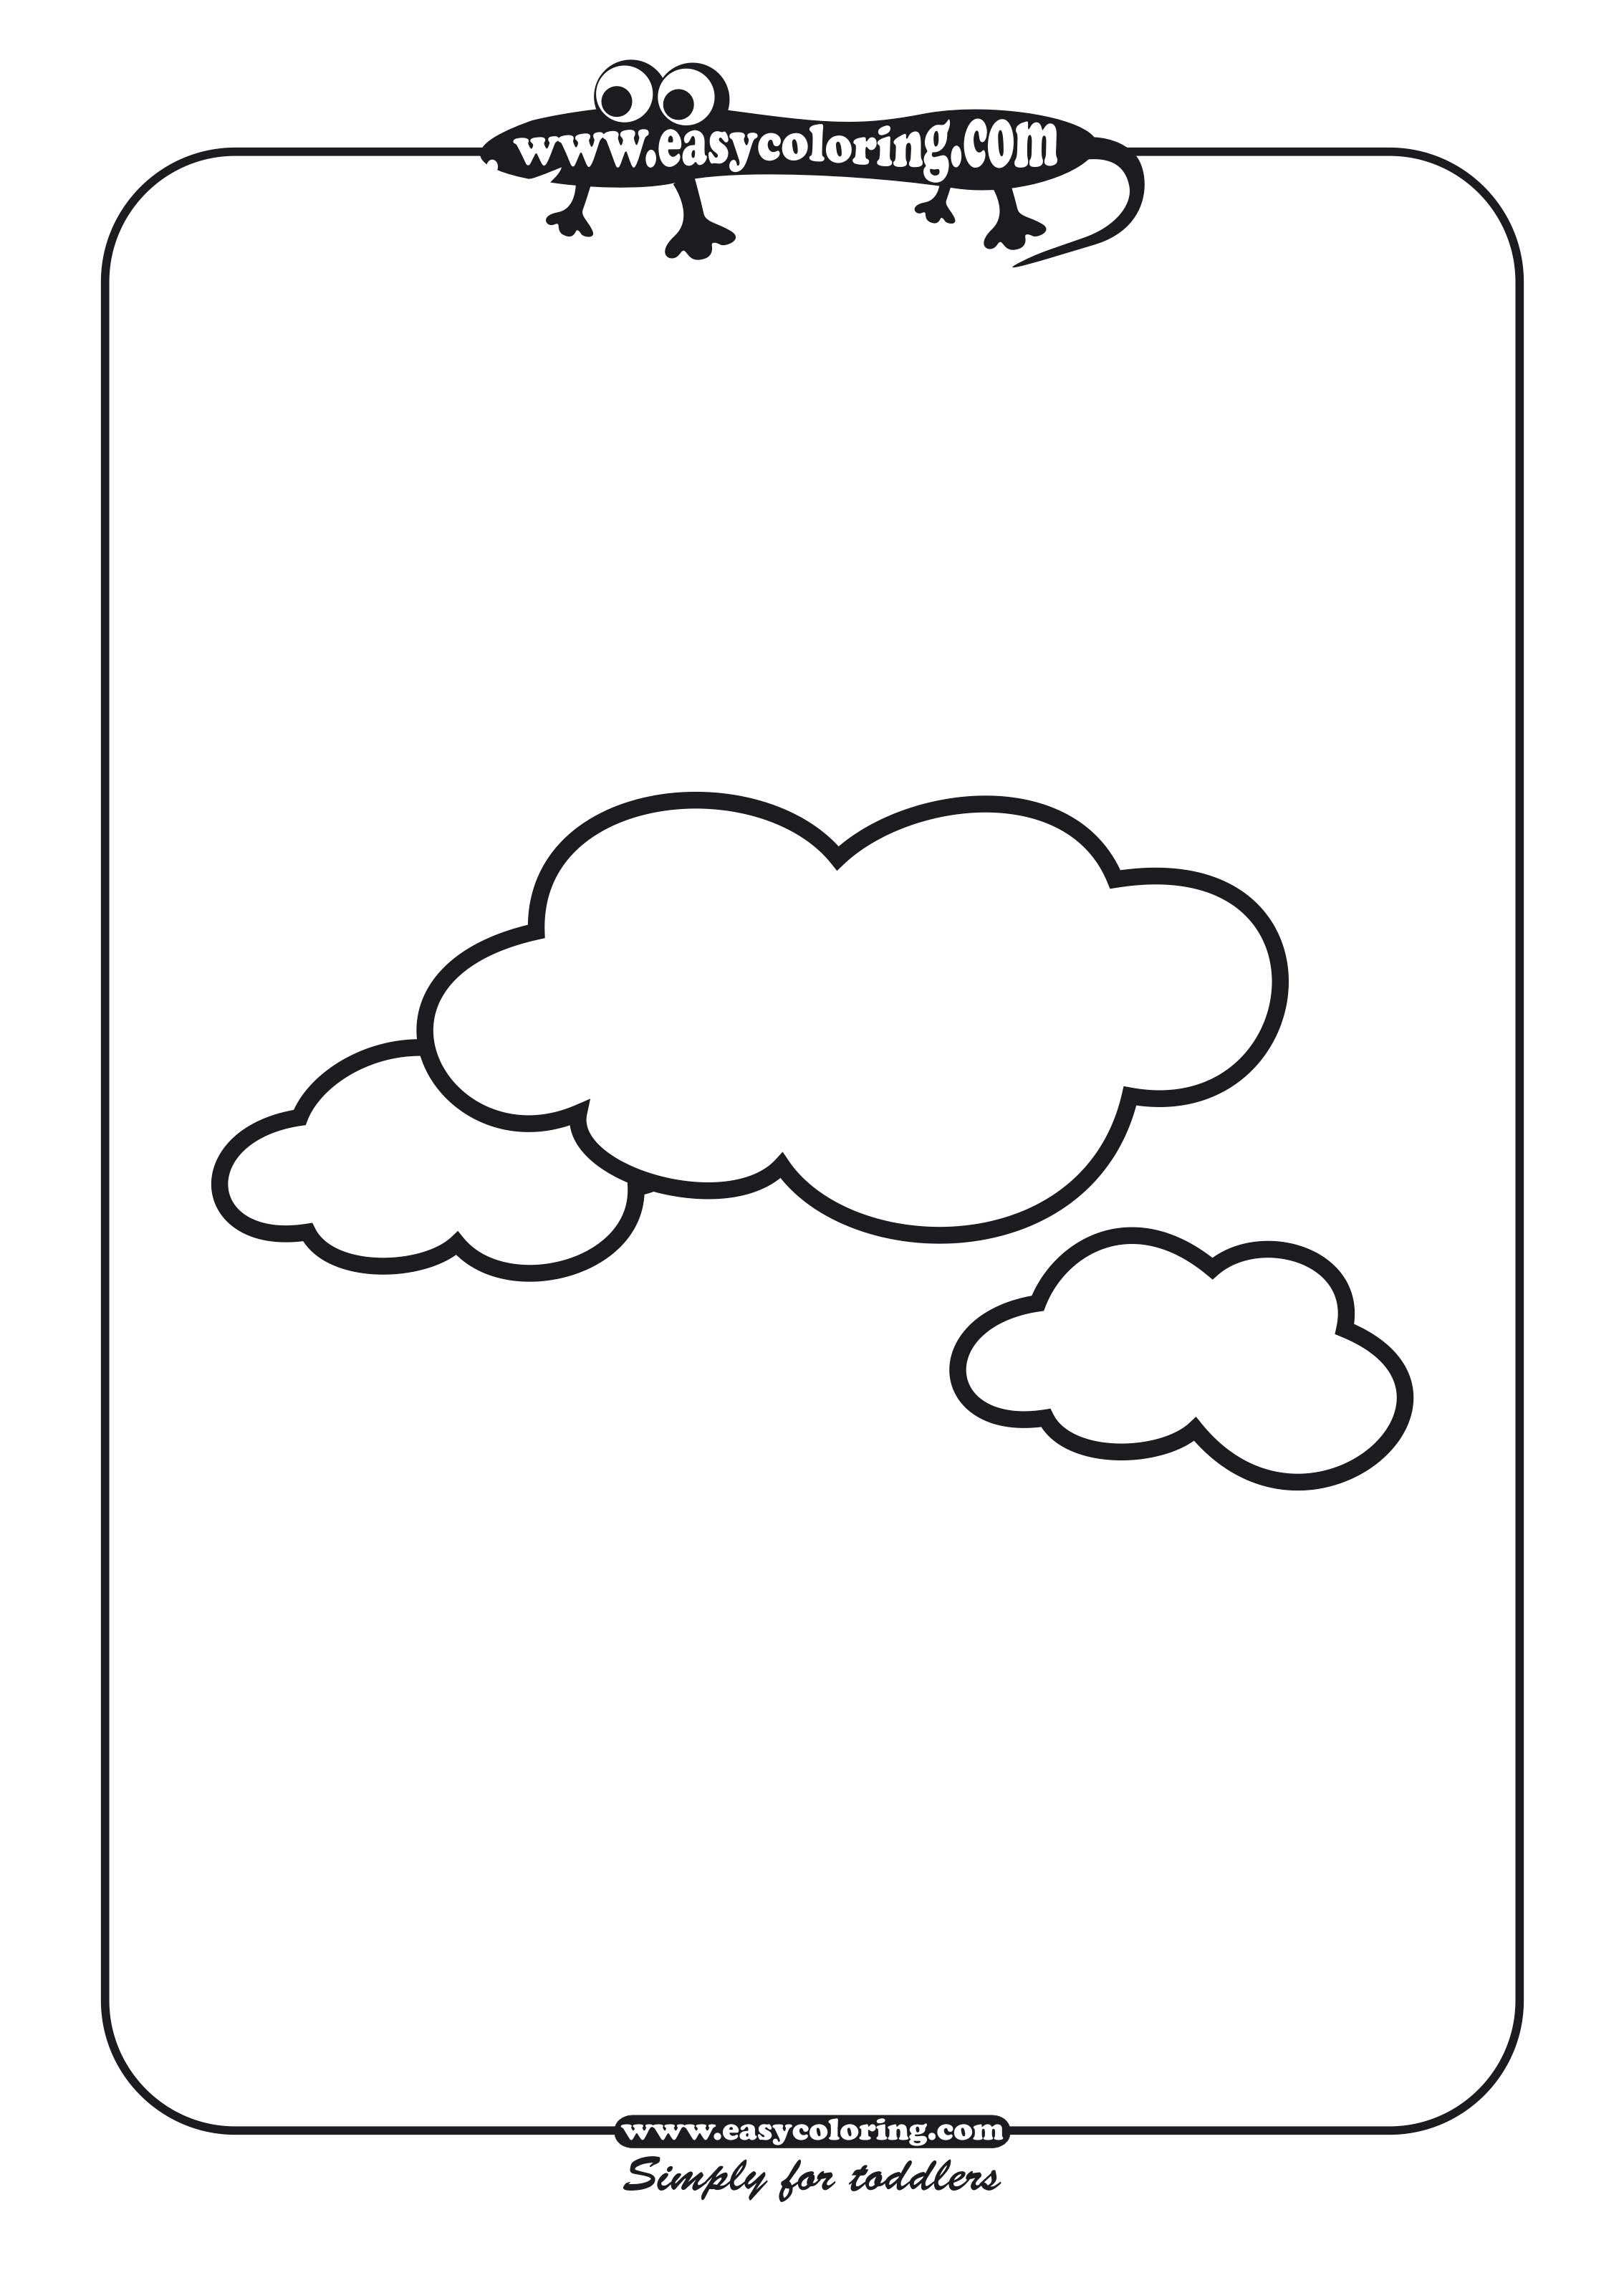 cloud shapes coloring pages - photo#7